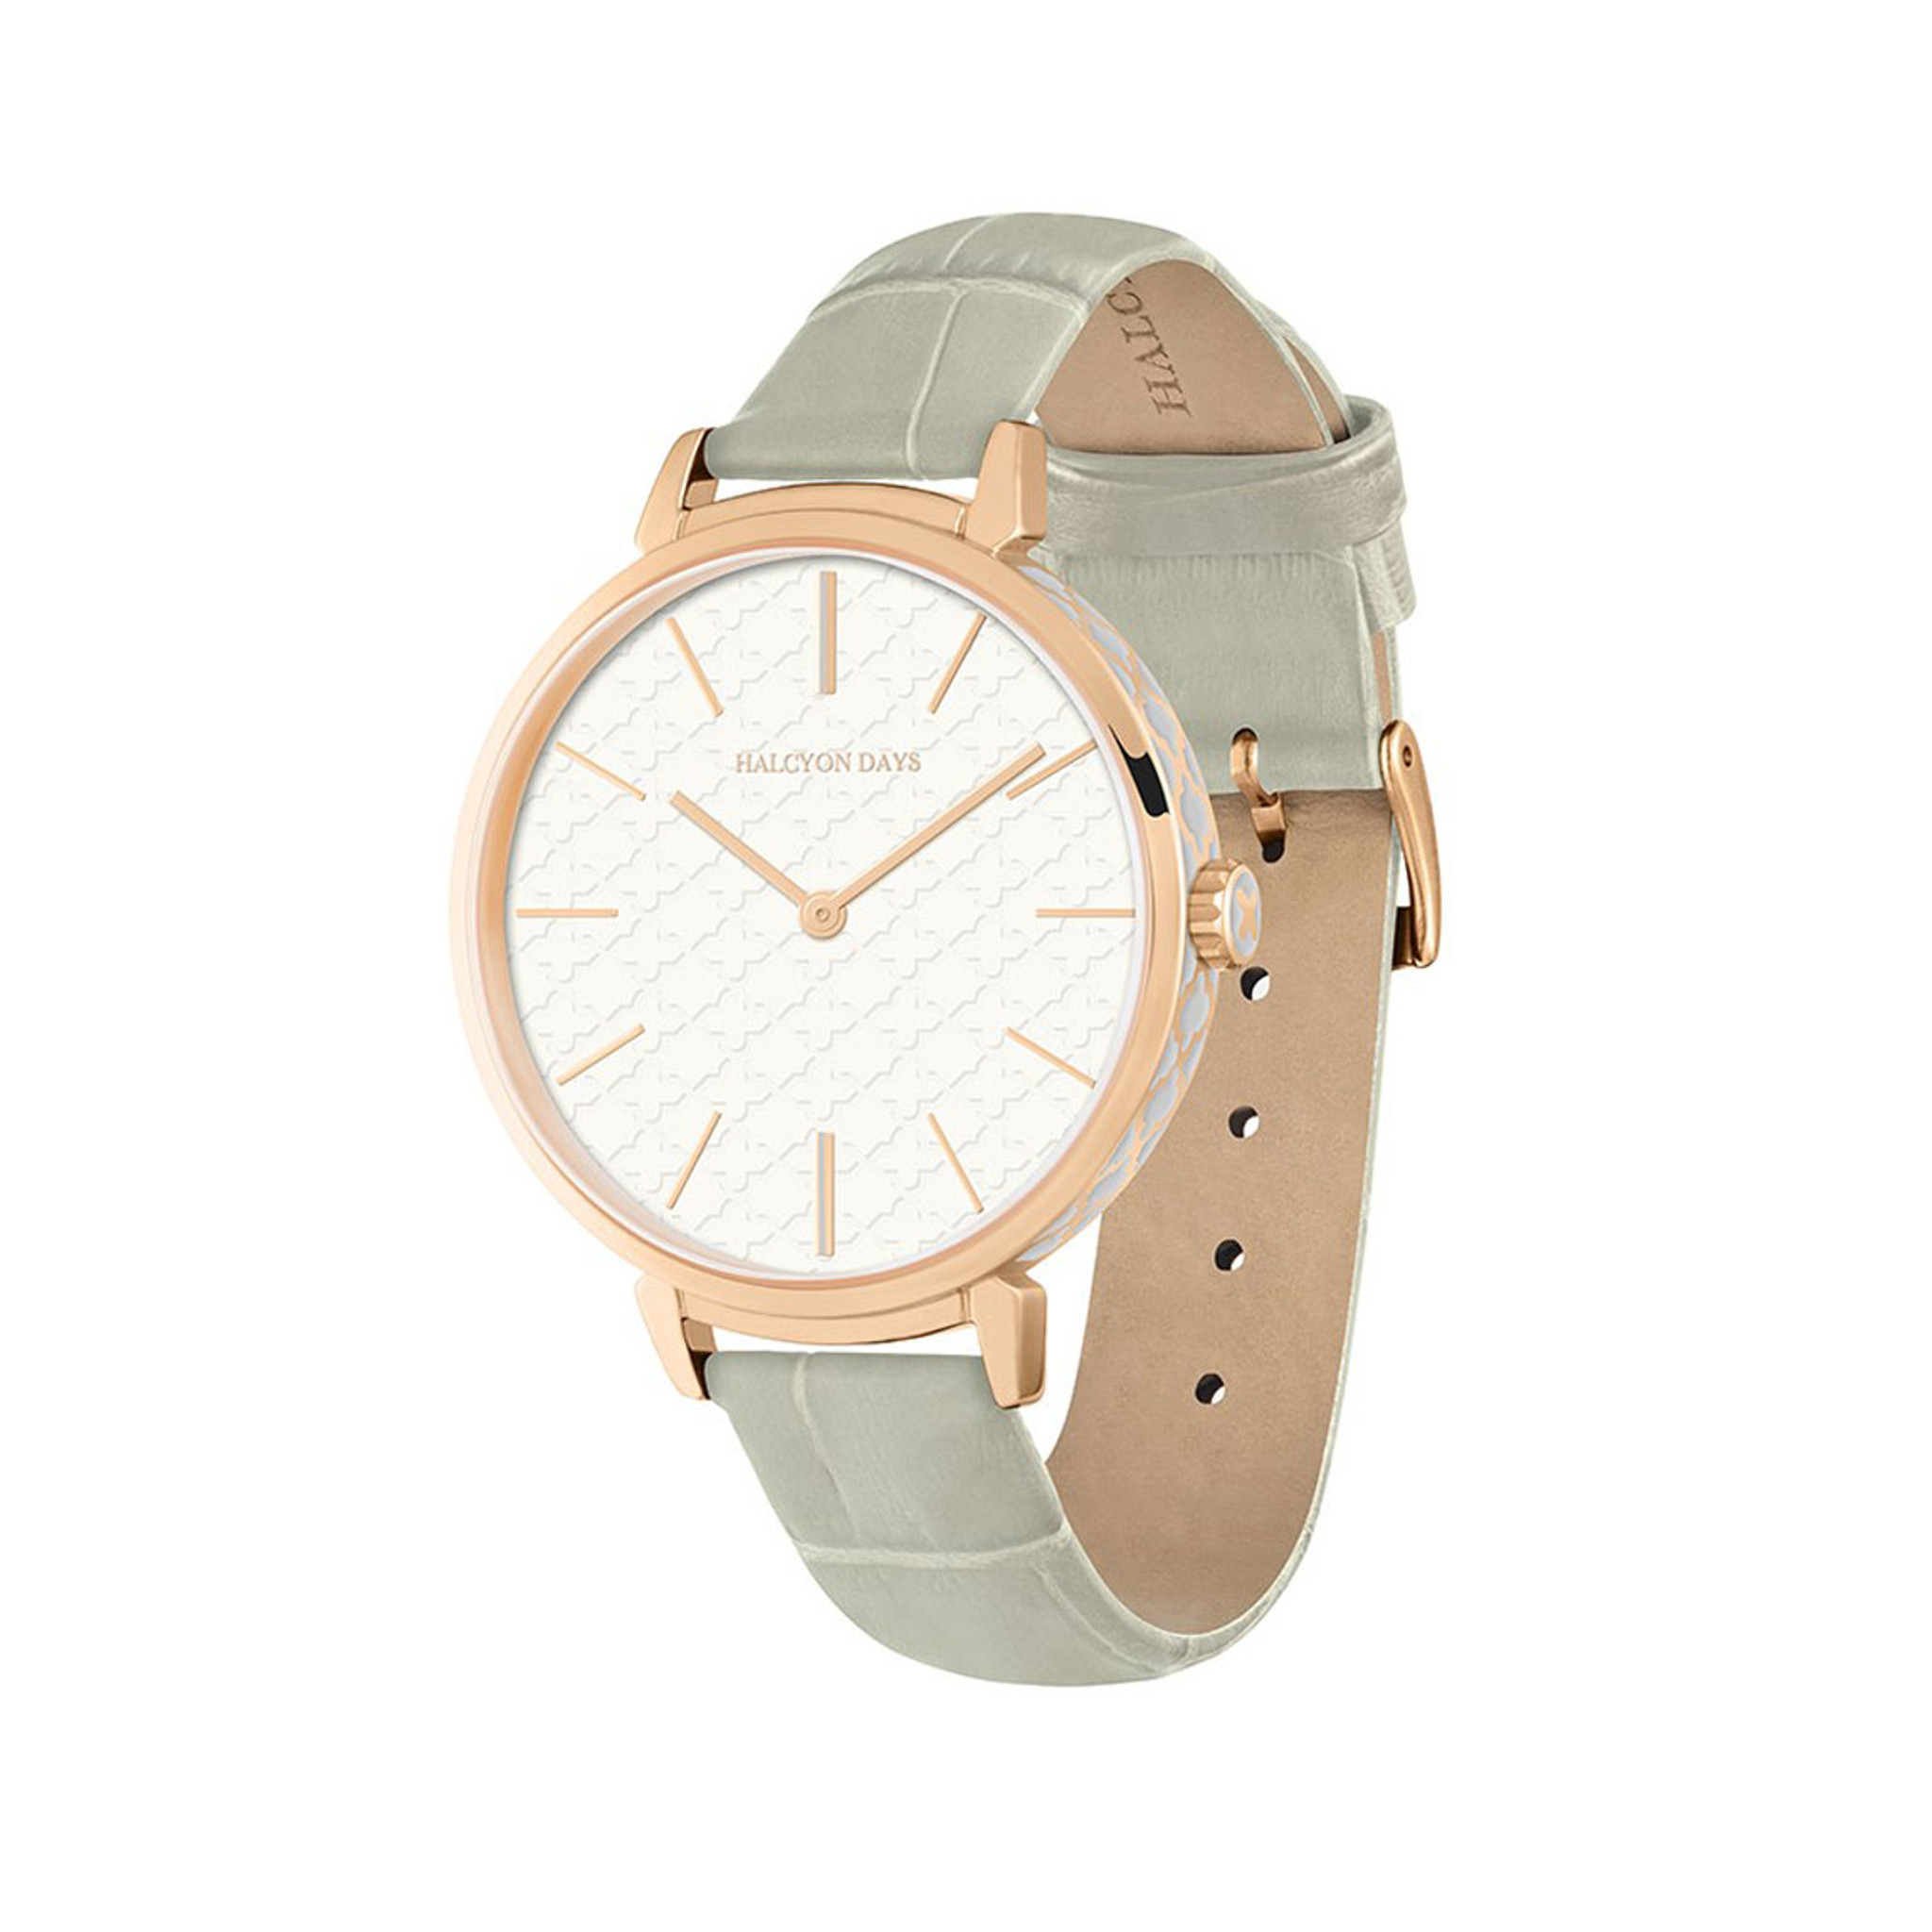 Leather Strap Rose Gold Watch Halcyon Days Agama Sports Leather Strap Watch Grey Rose Gold Wtasp17lerg